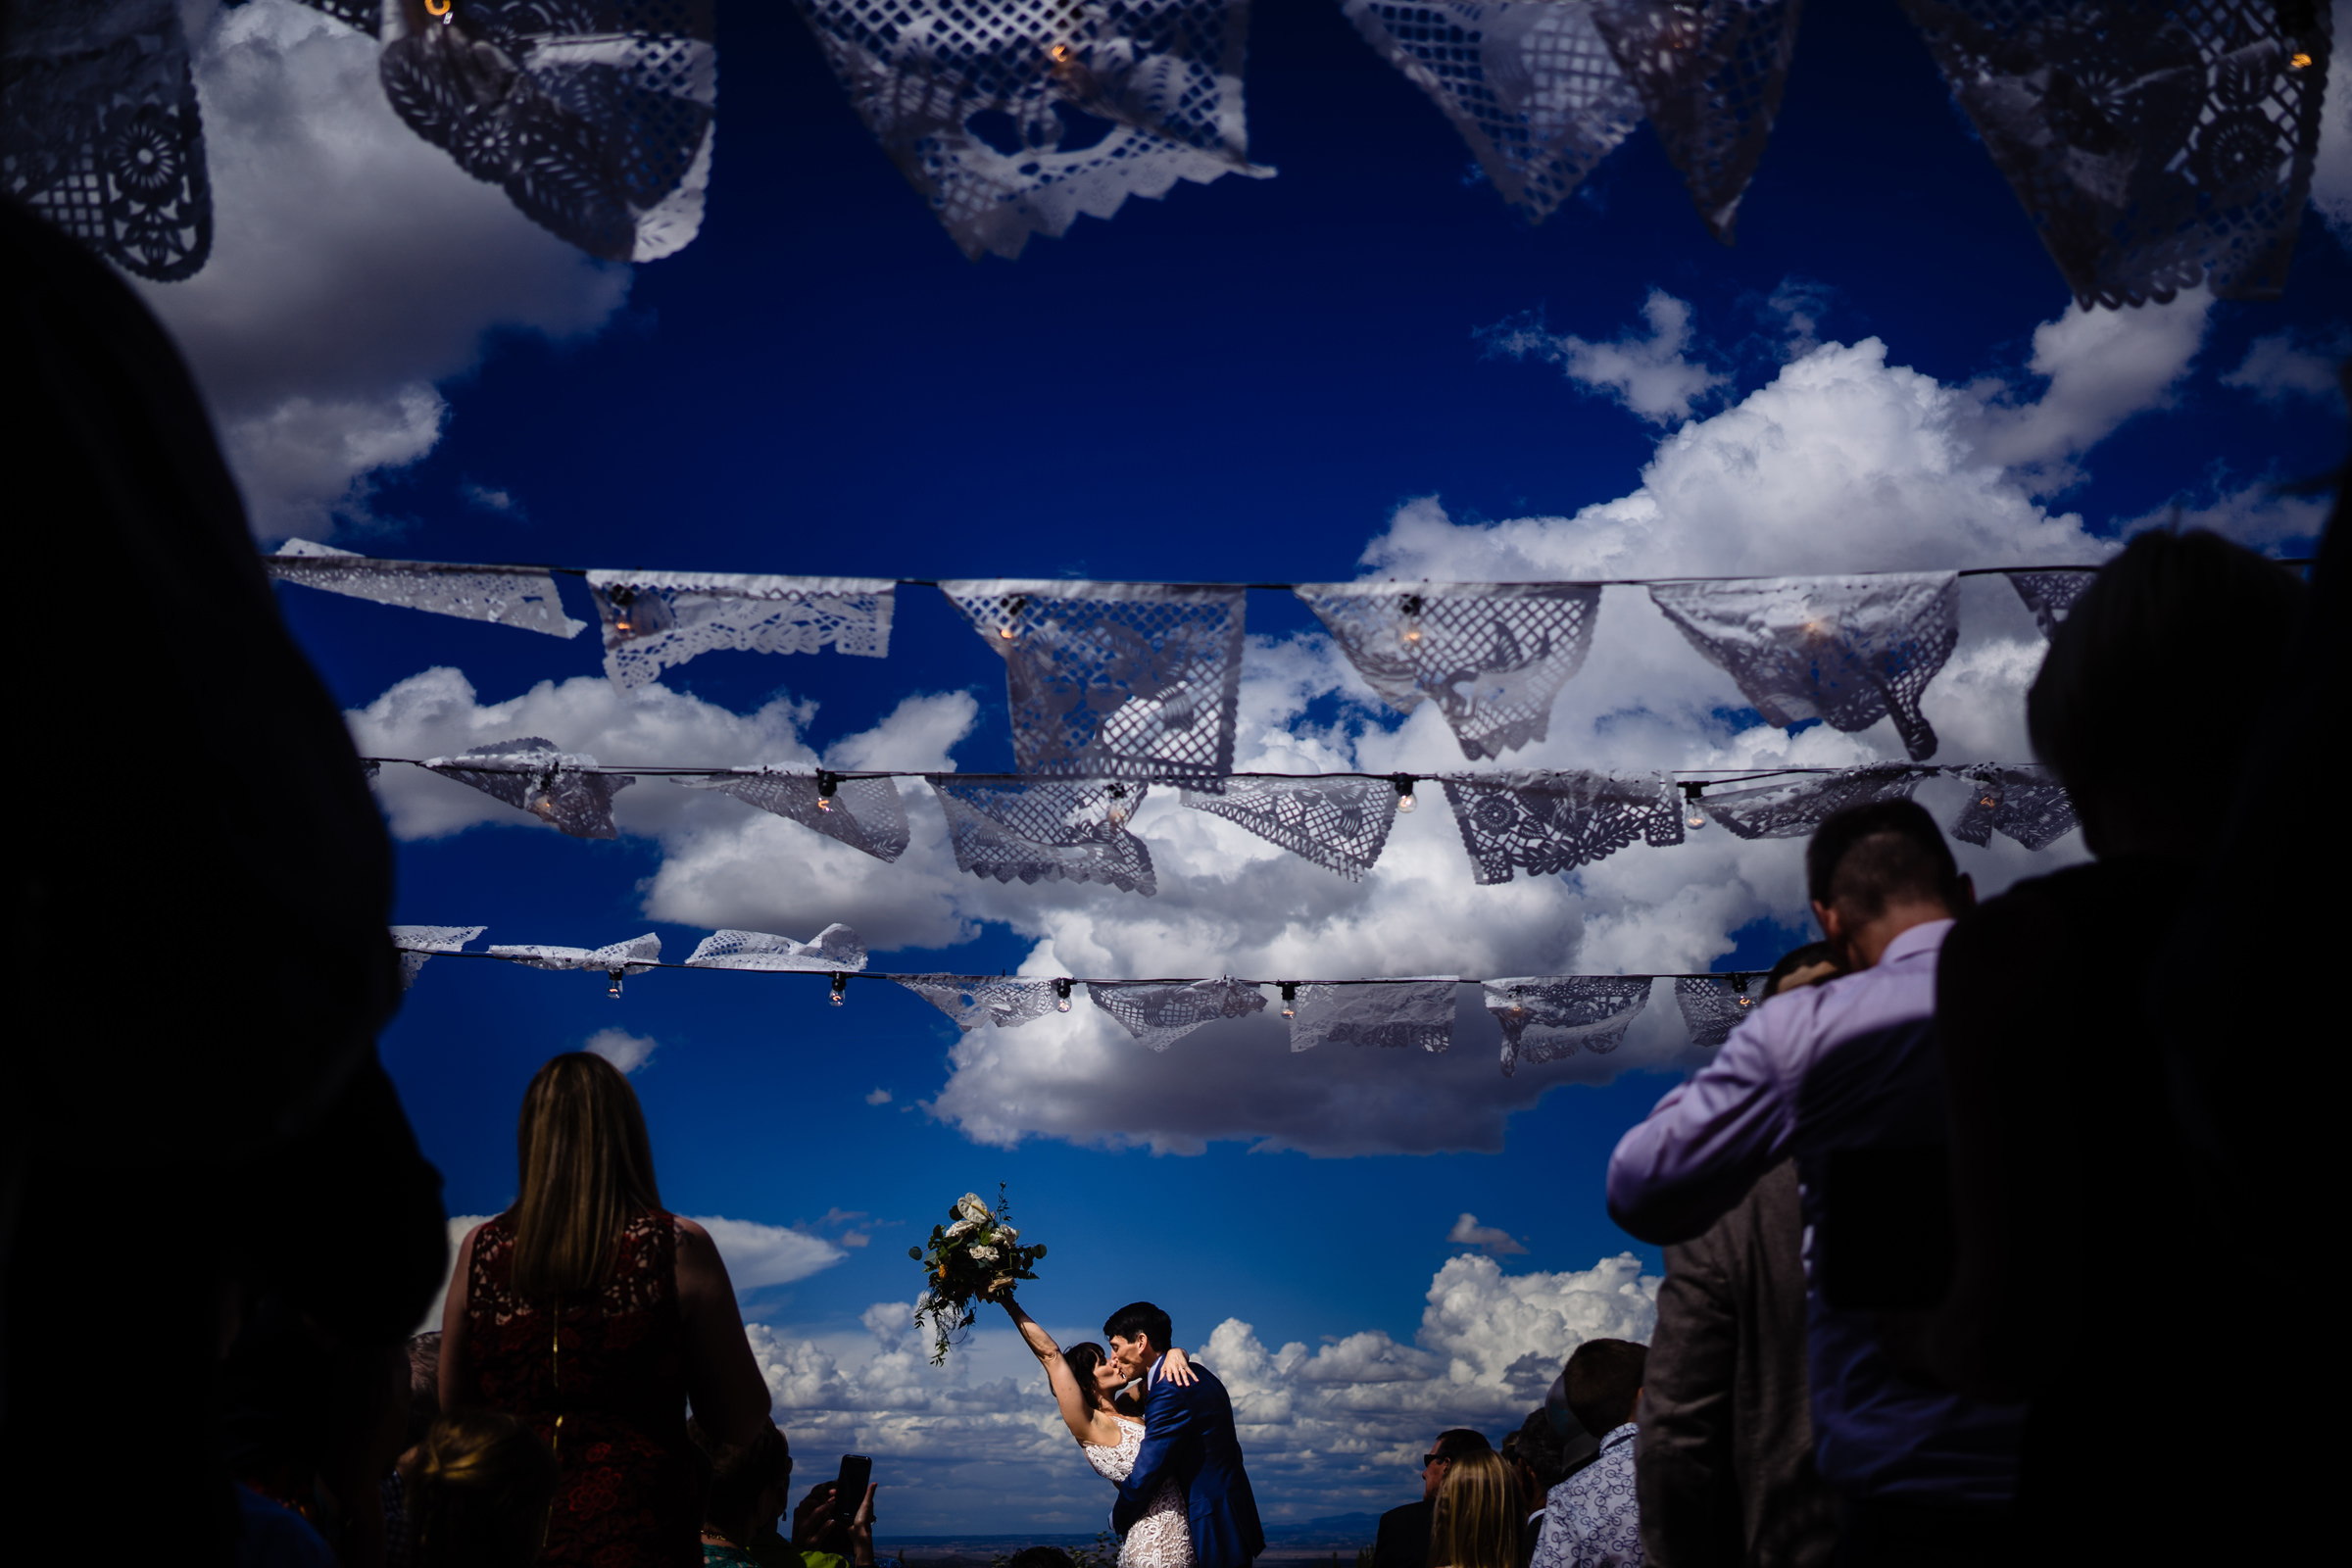 bride and grooms excited first kiss amongst the clouds-Arkansas photographer- photo by Vinson Images